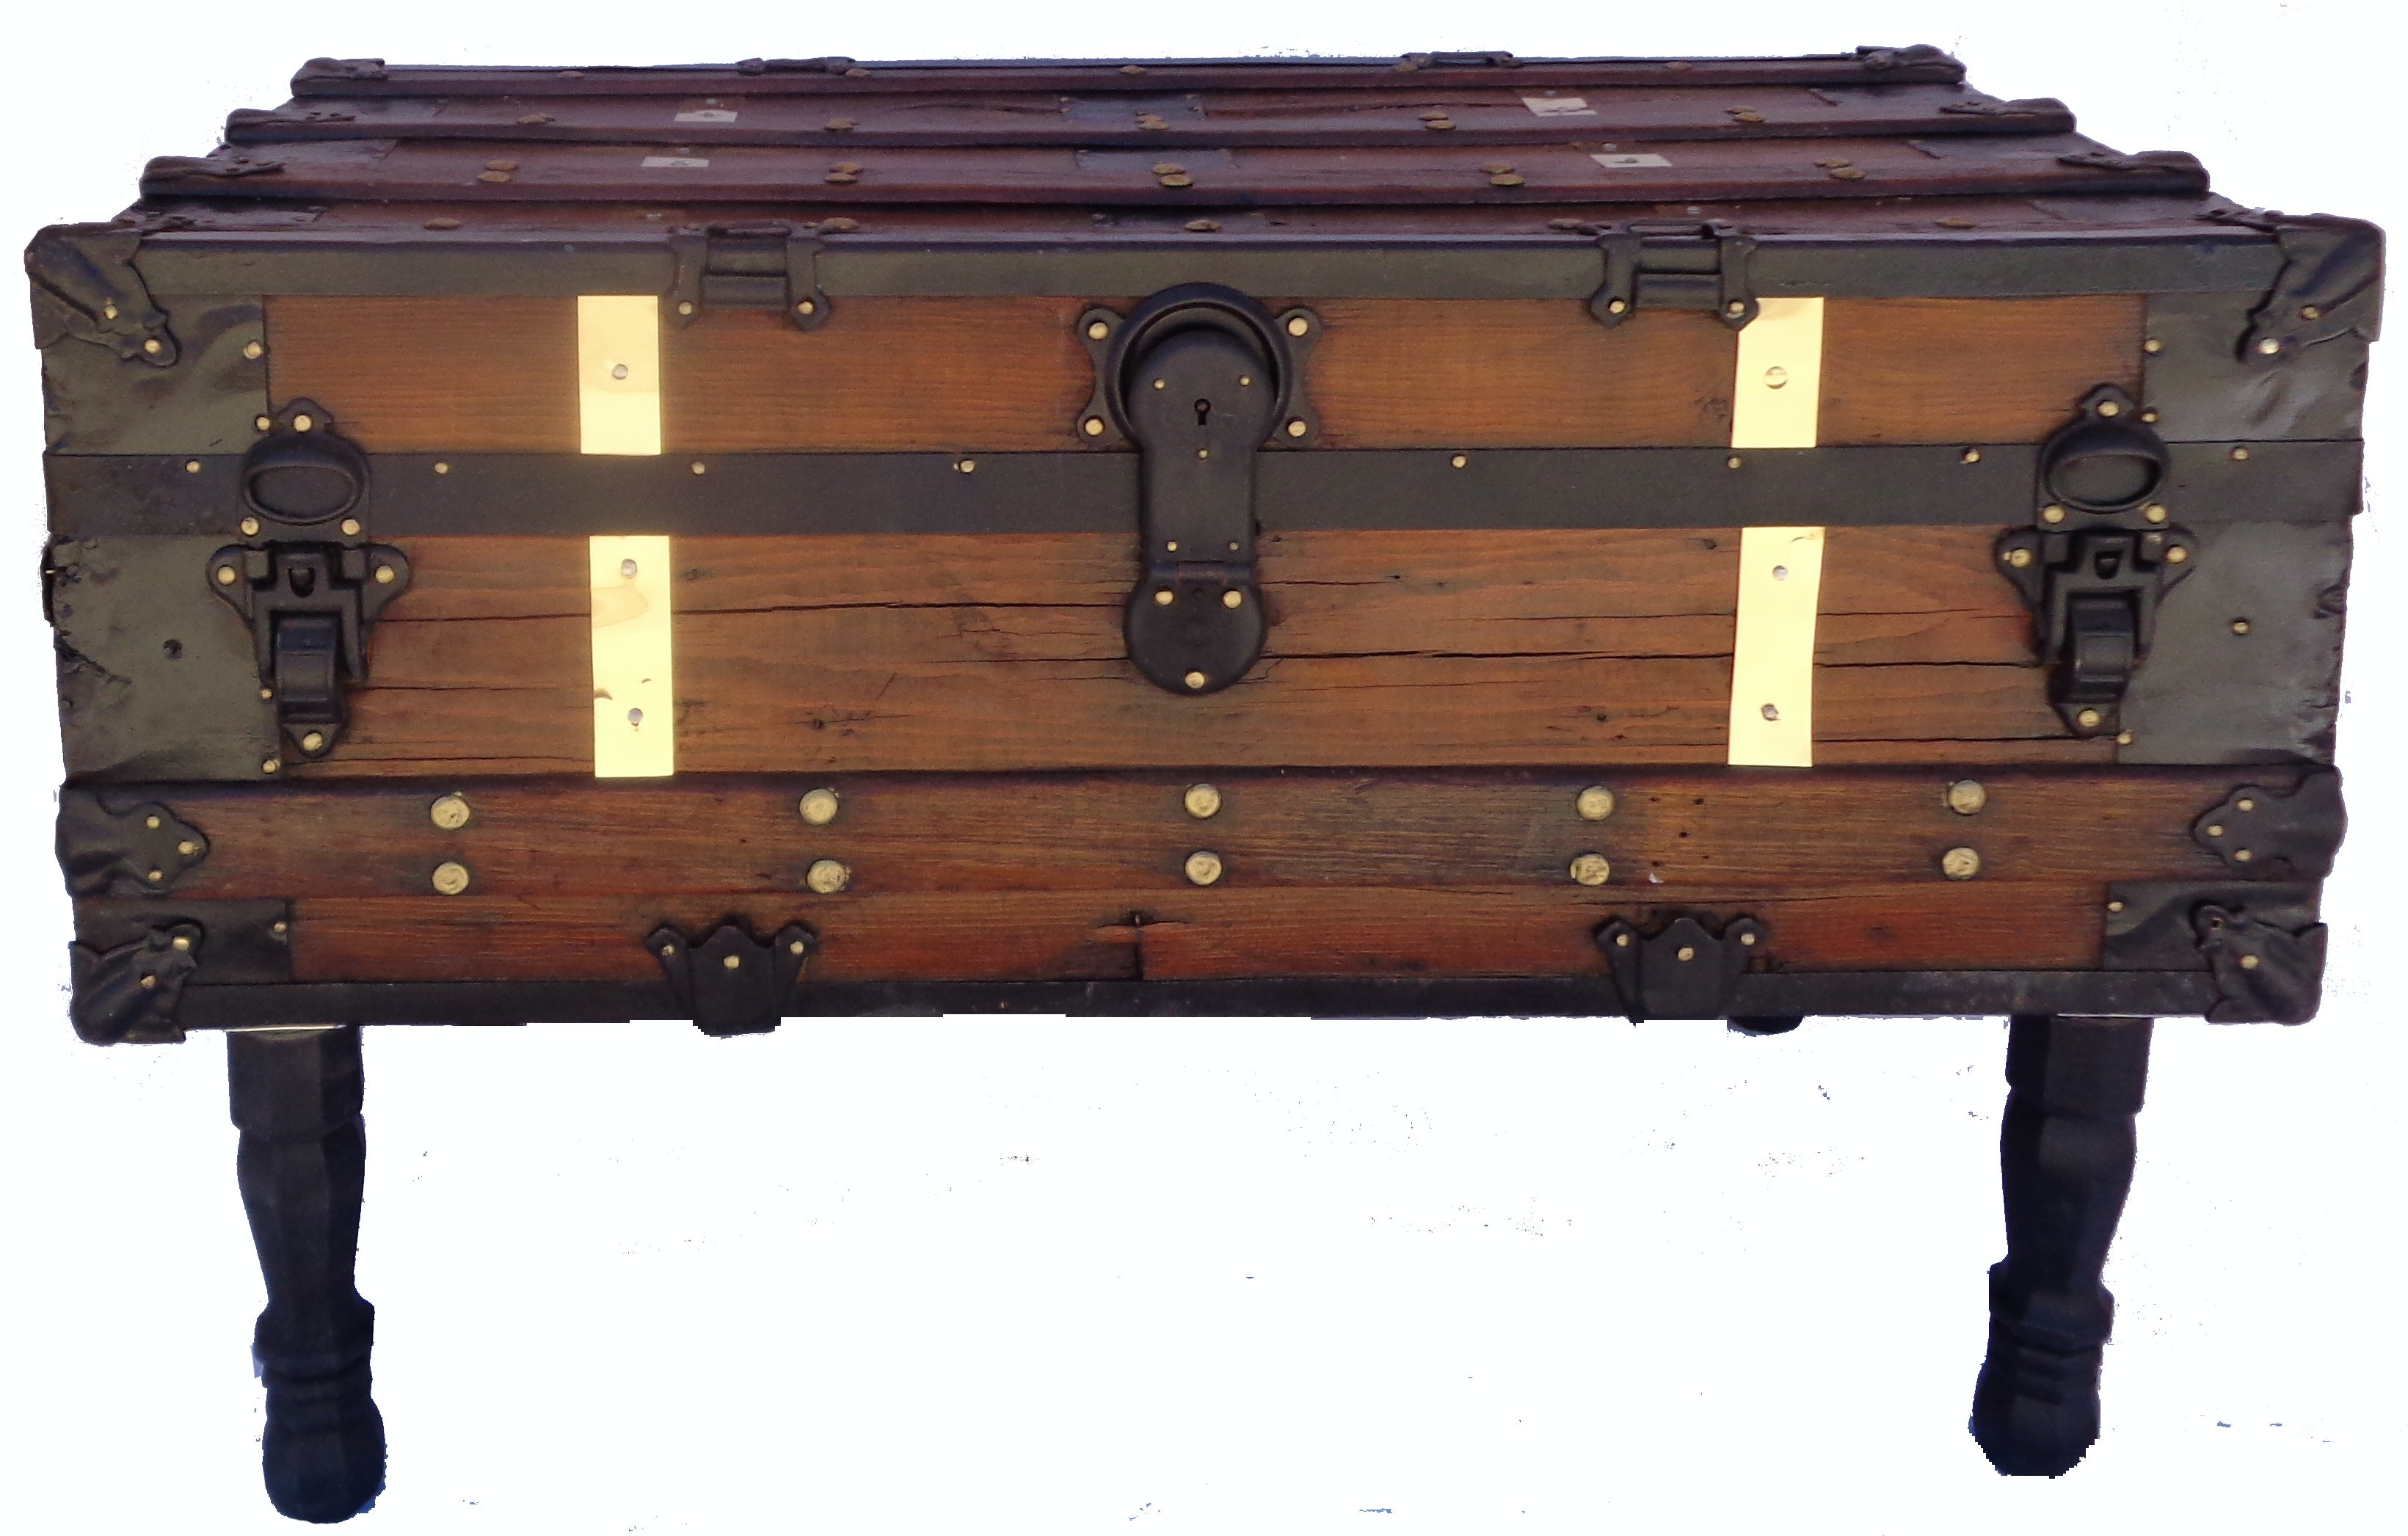 Antique Steamer Trunk/Coffee Table | Antique Trunk Restoration U0026 Design |  Boutique Furniture In Palm Springs, CA | Design Kollective